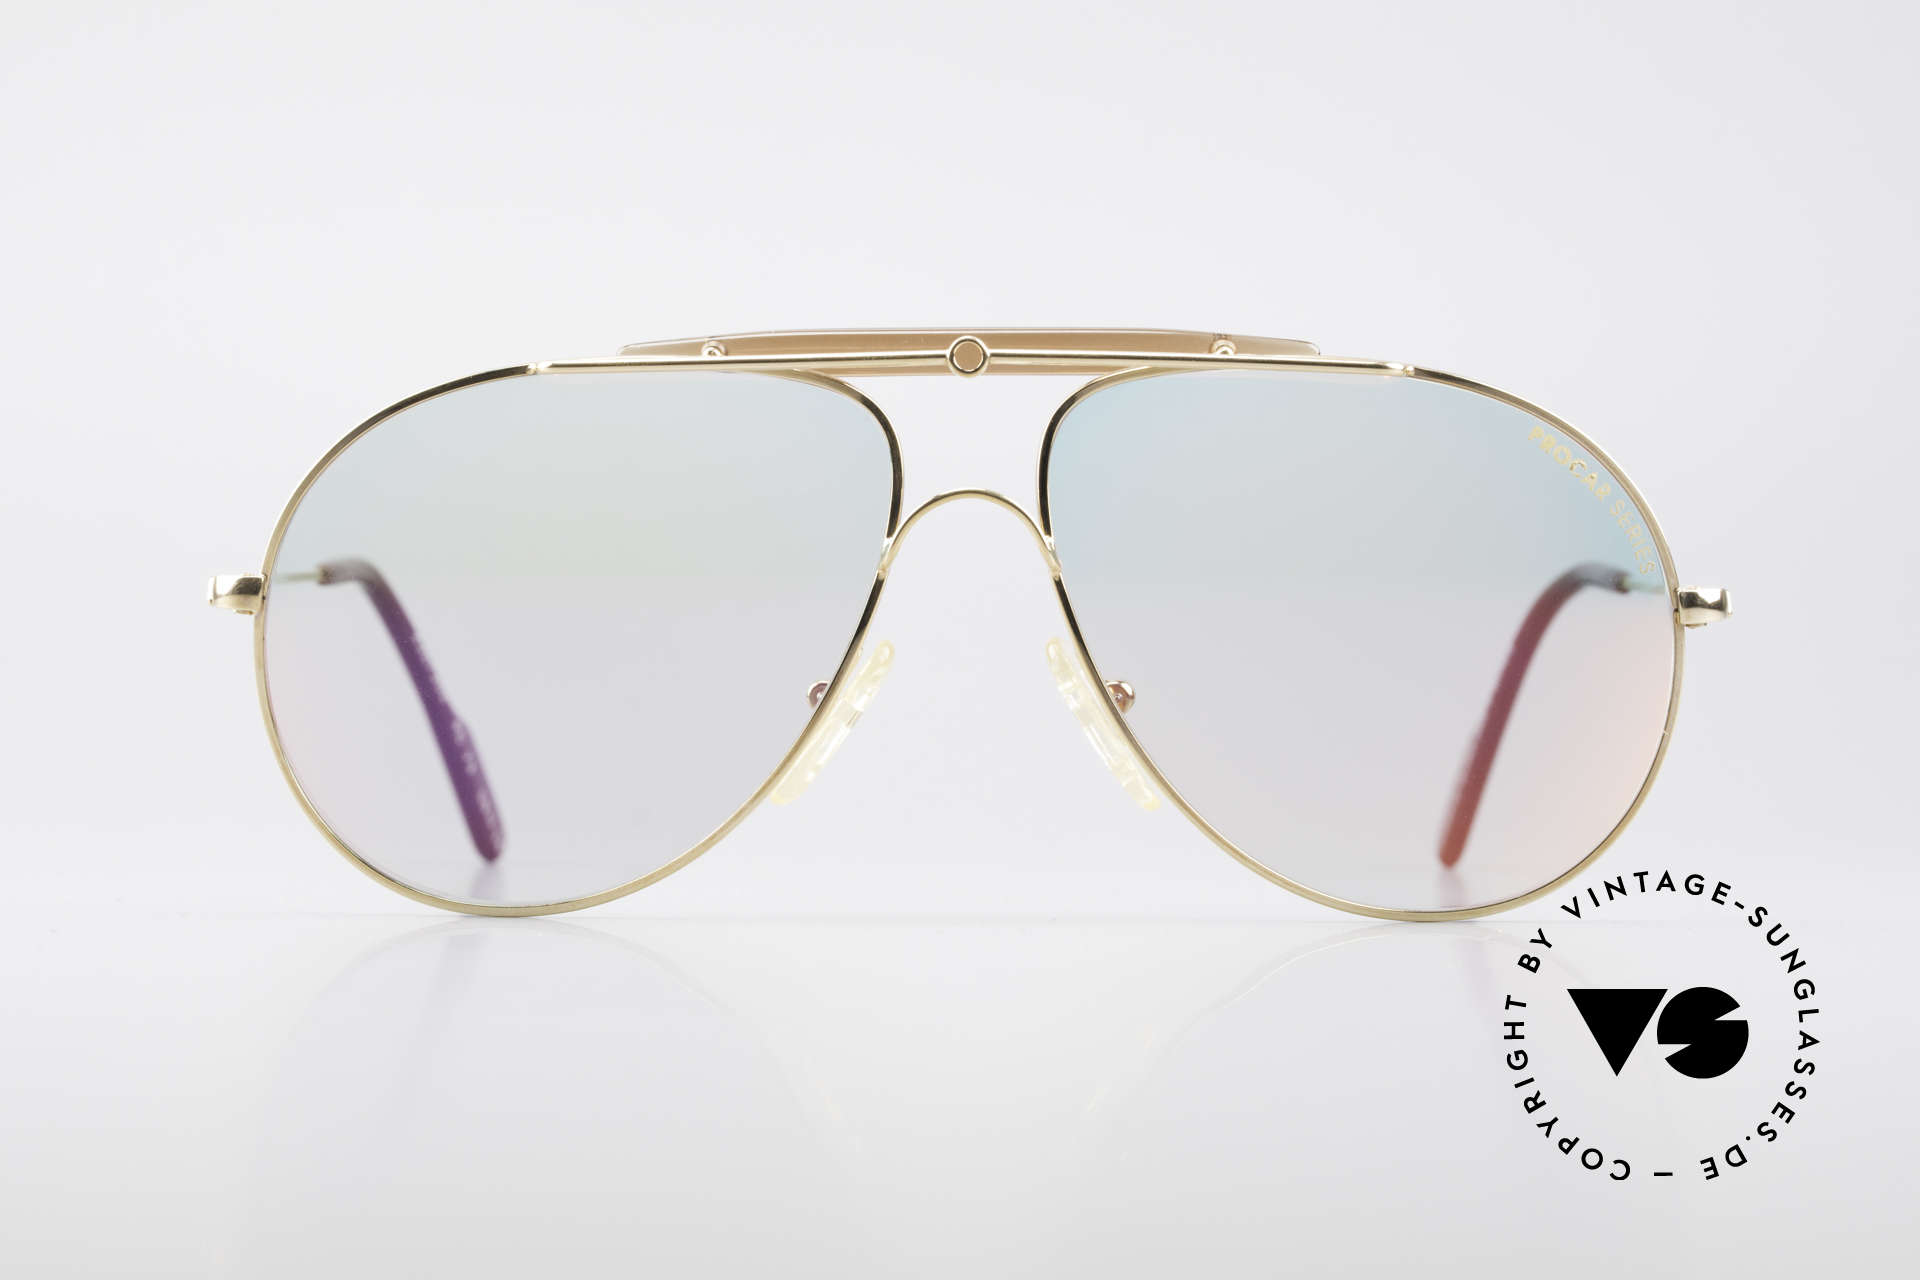 Alpina PC73 ProCar Serie Sunglasses Men, unique & rare, vintage aviator shades, made in Germany, Made for Men and Women